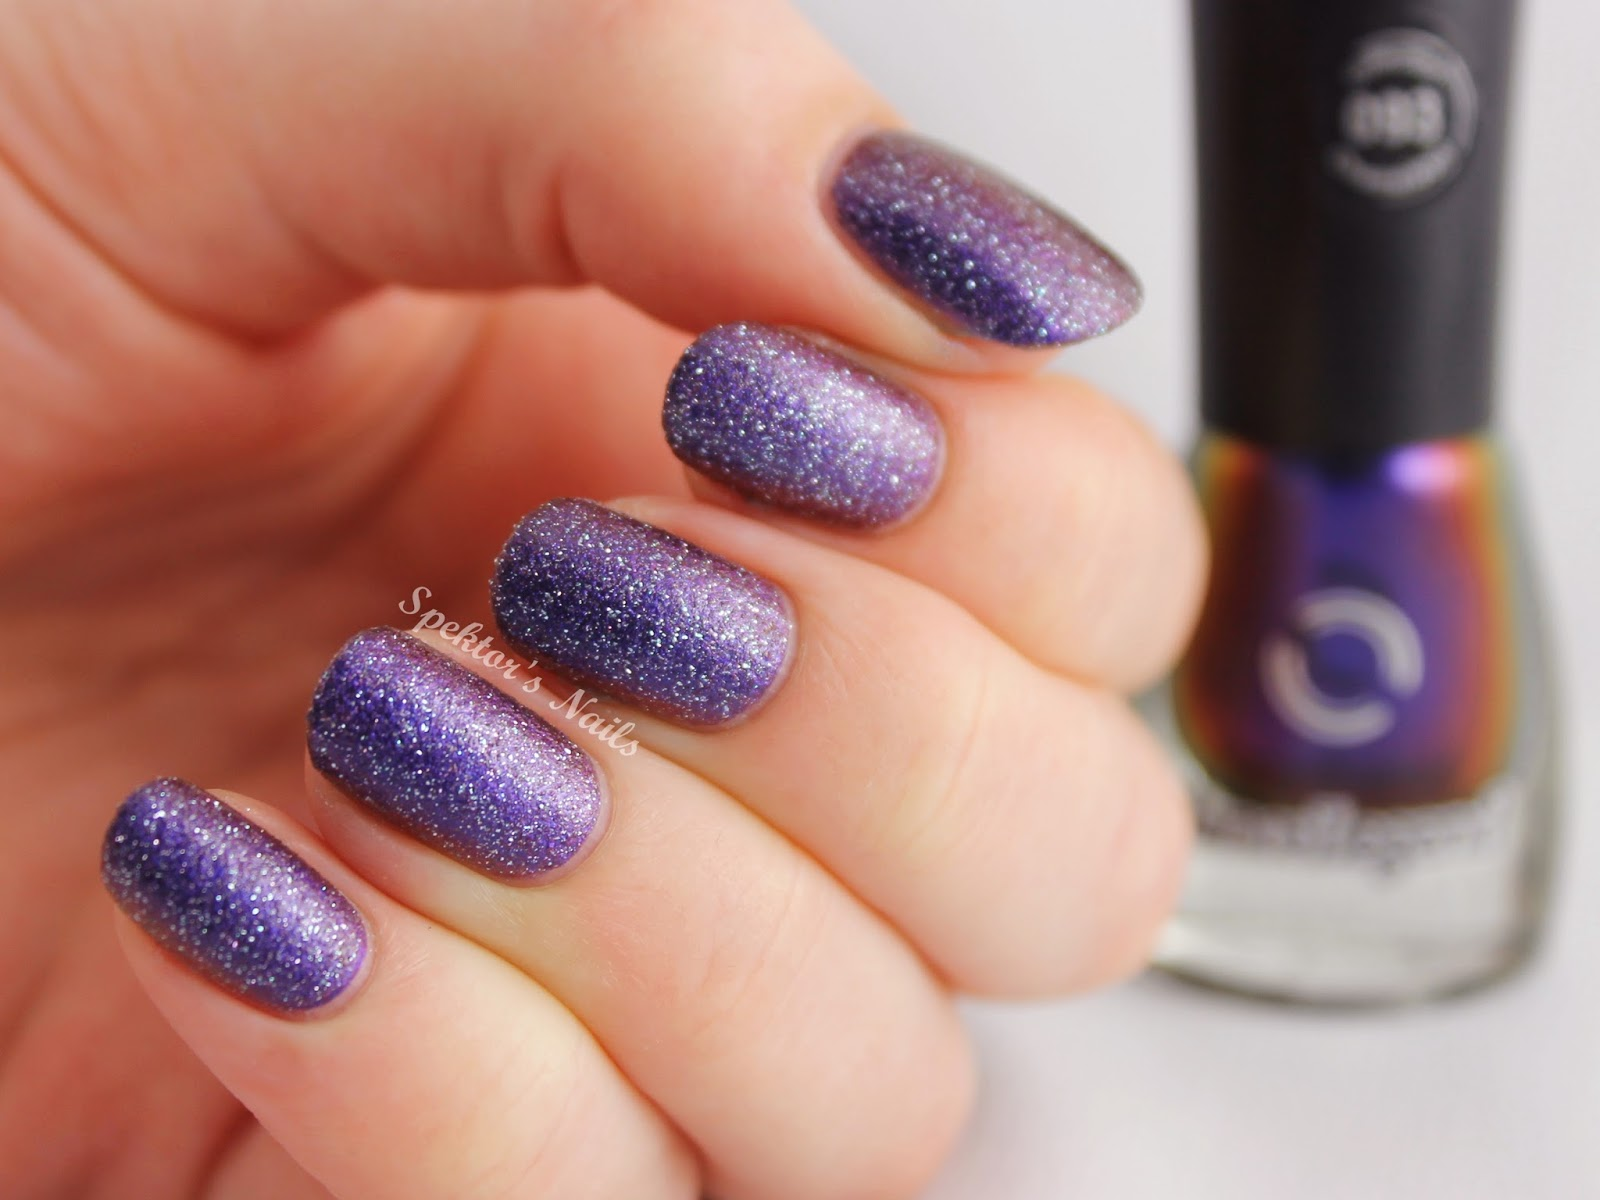 Galaxy Nails out of the bottle / Dance Legend - Top Sahara + Celia